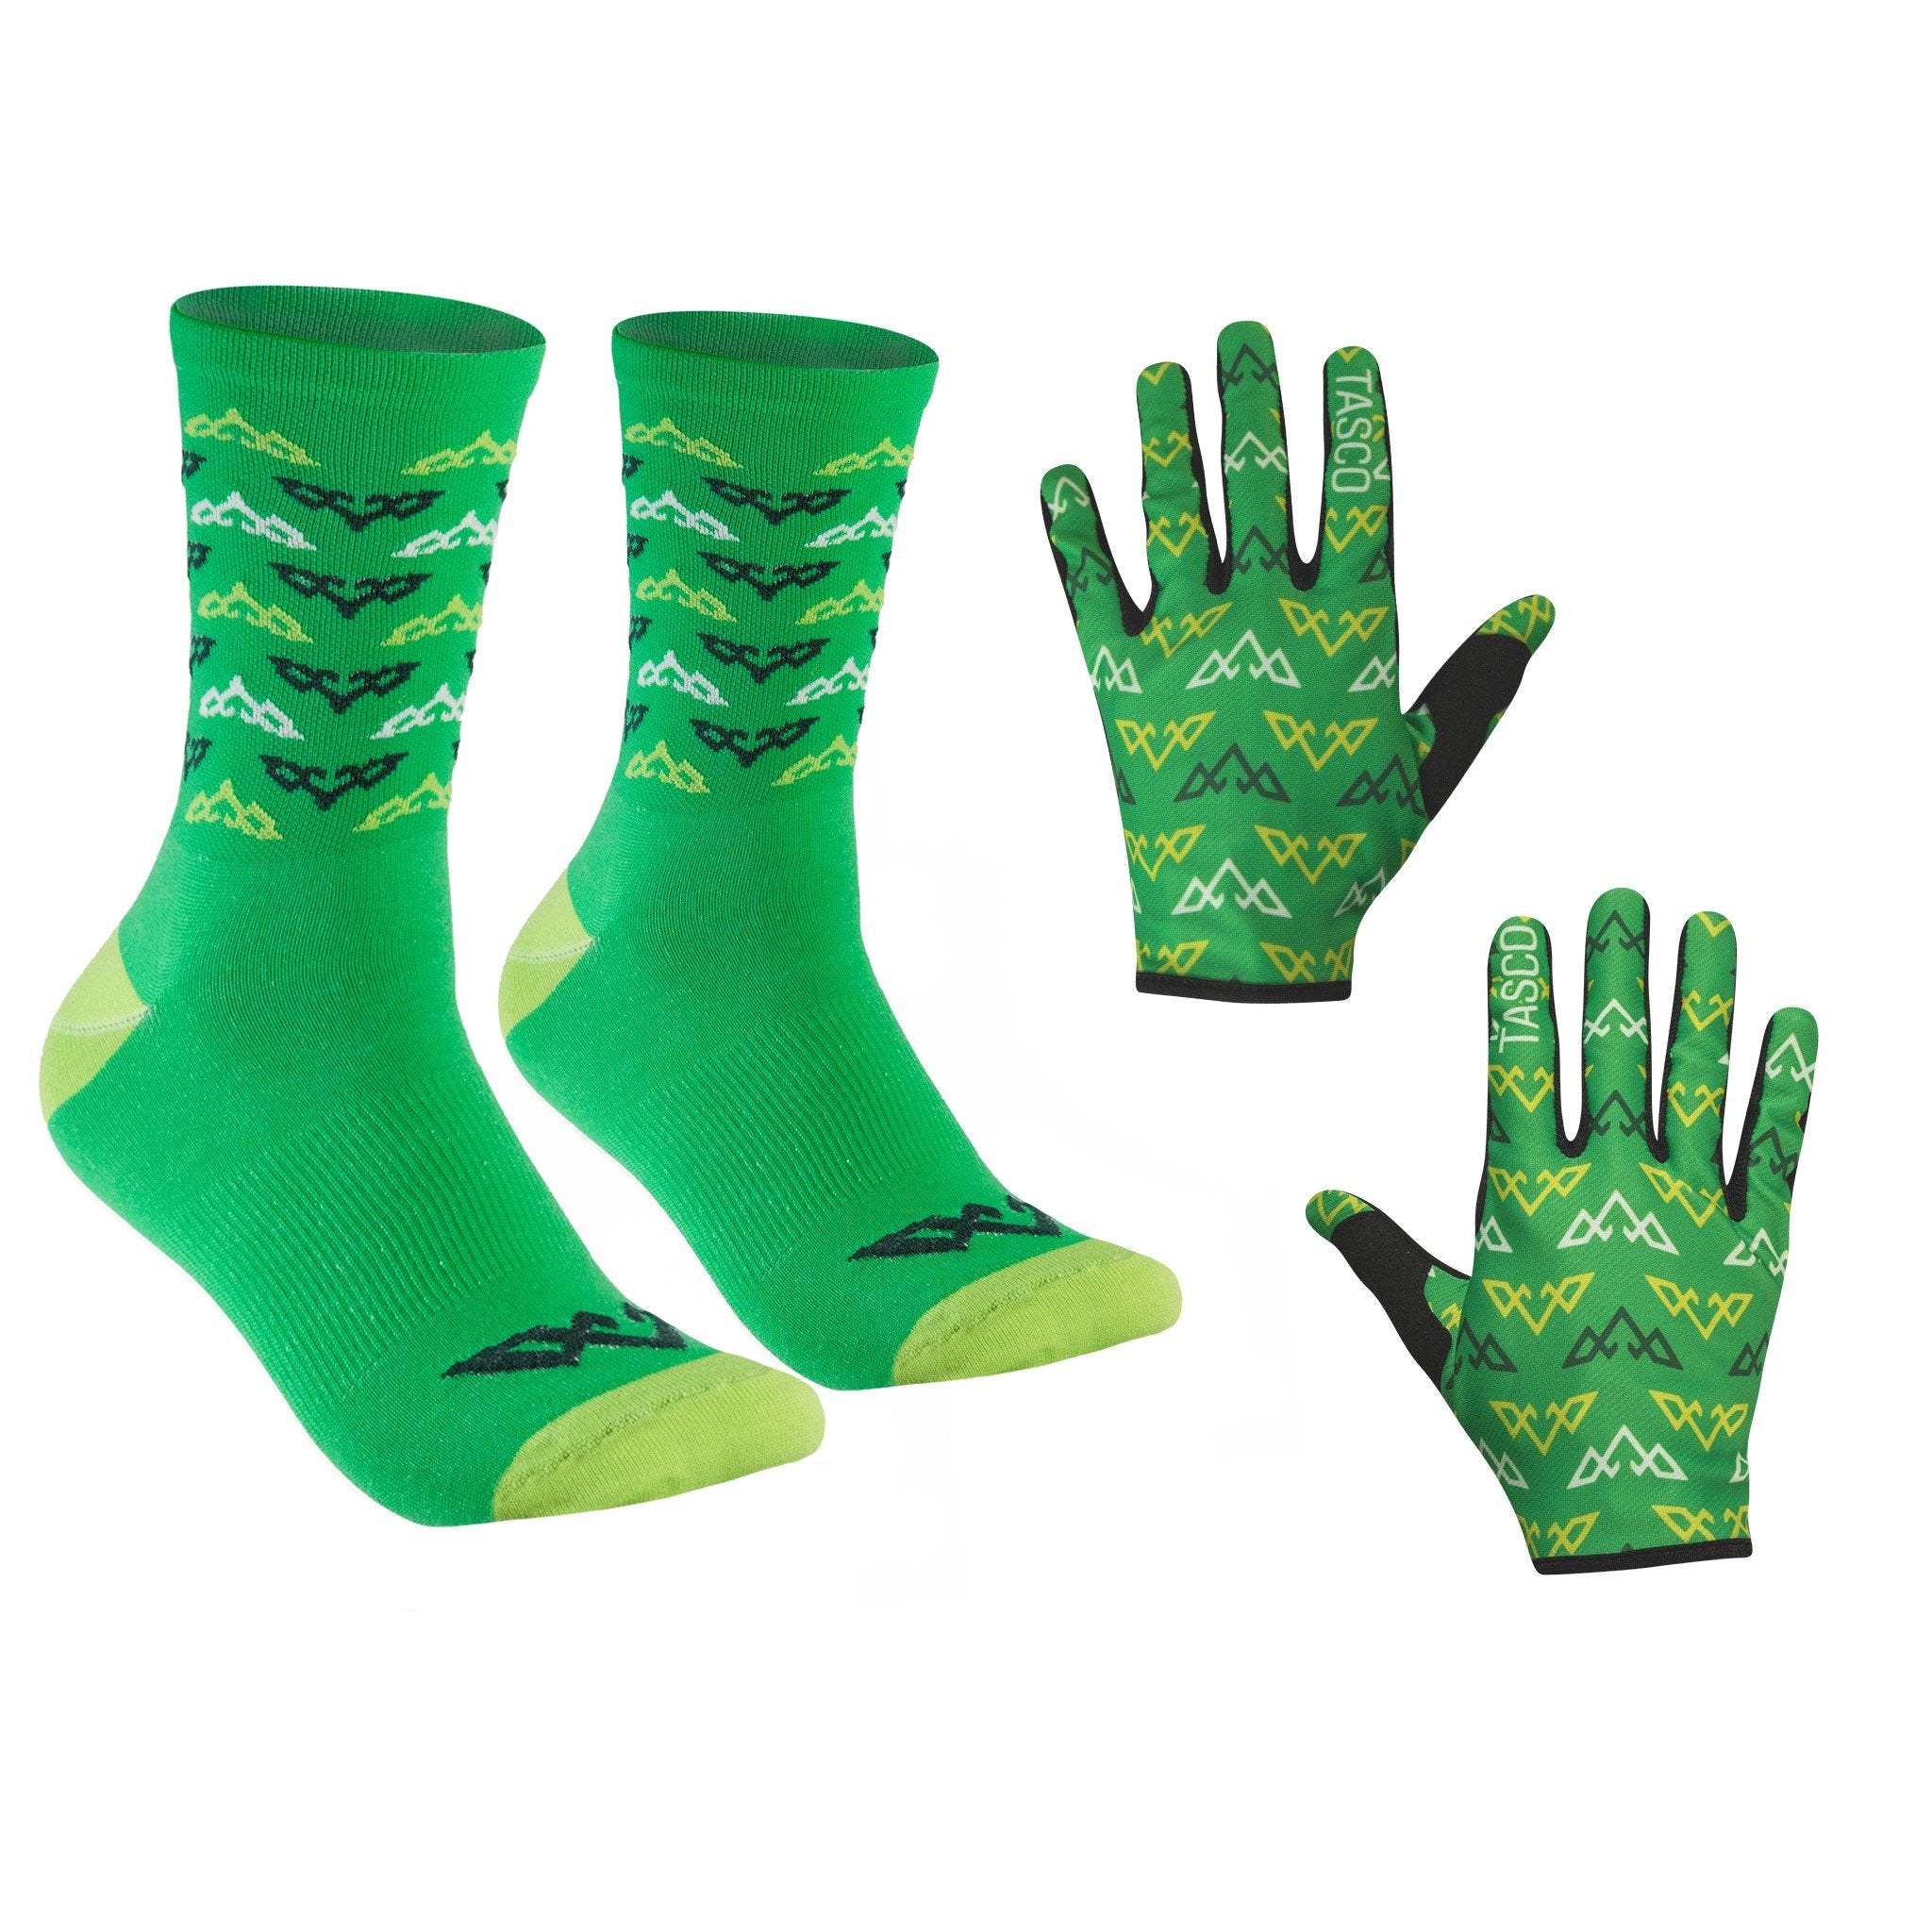 Double Digits Glove & Sock Kit - Green Inversion by Tasco MTB